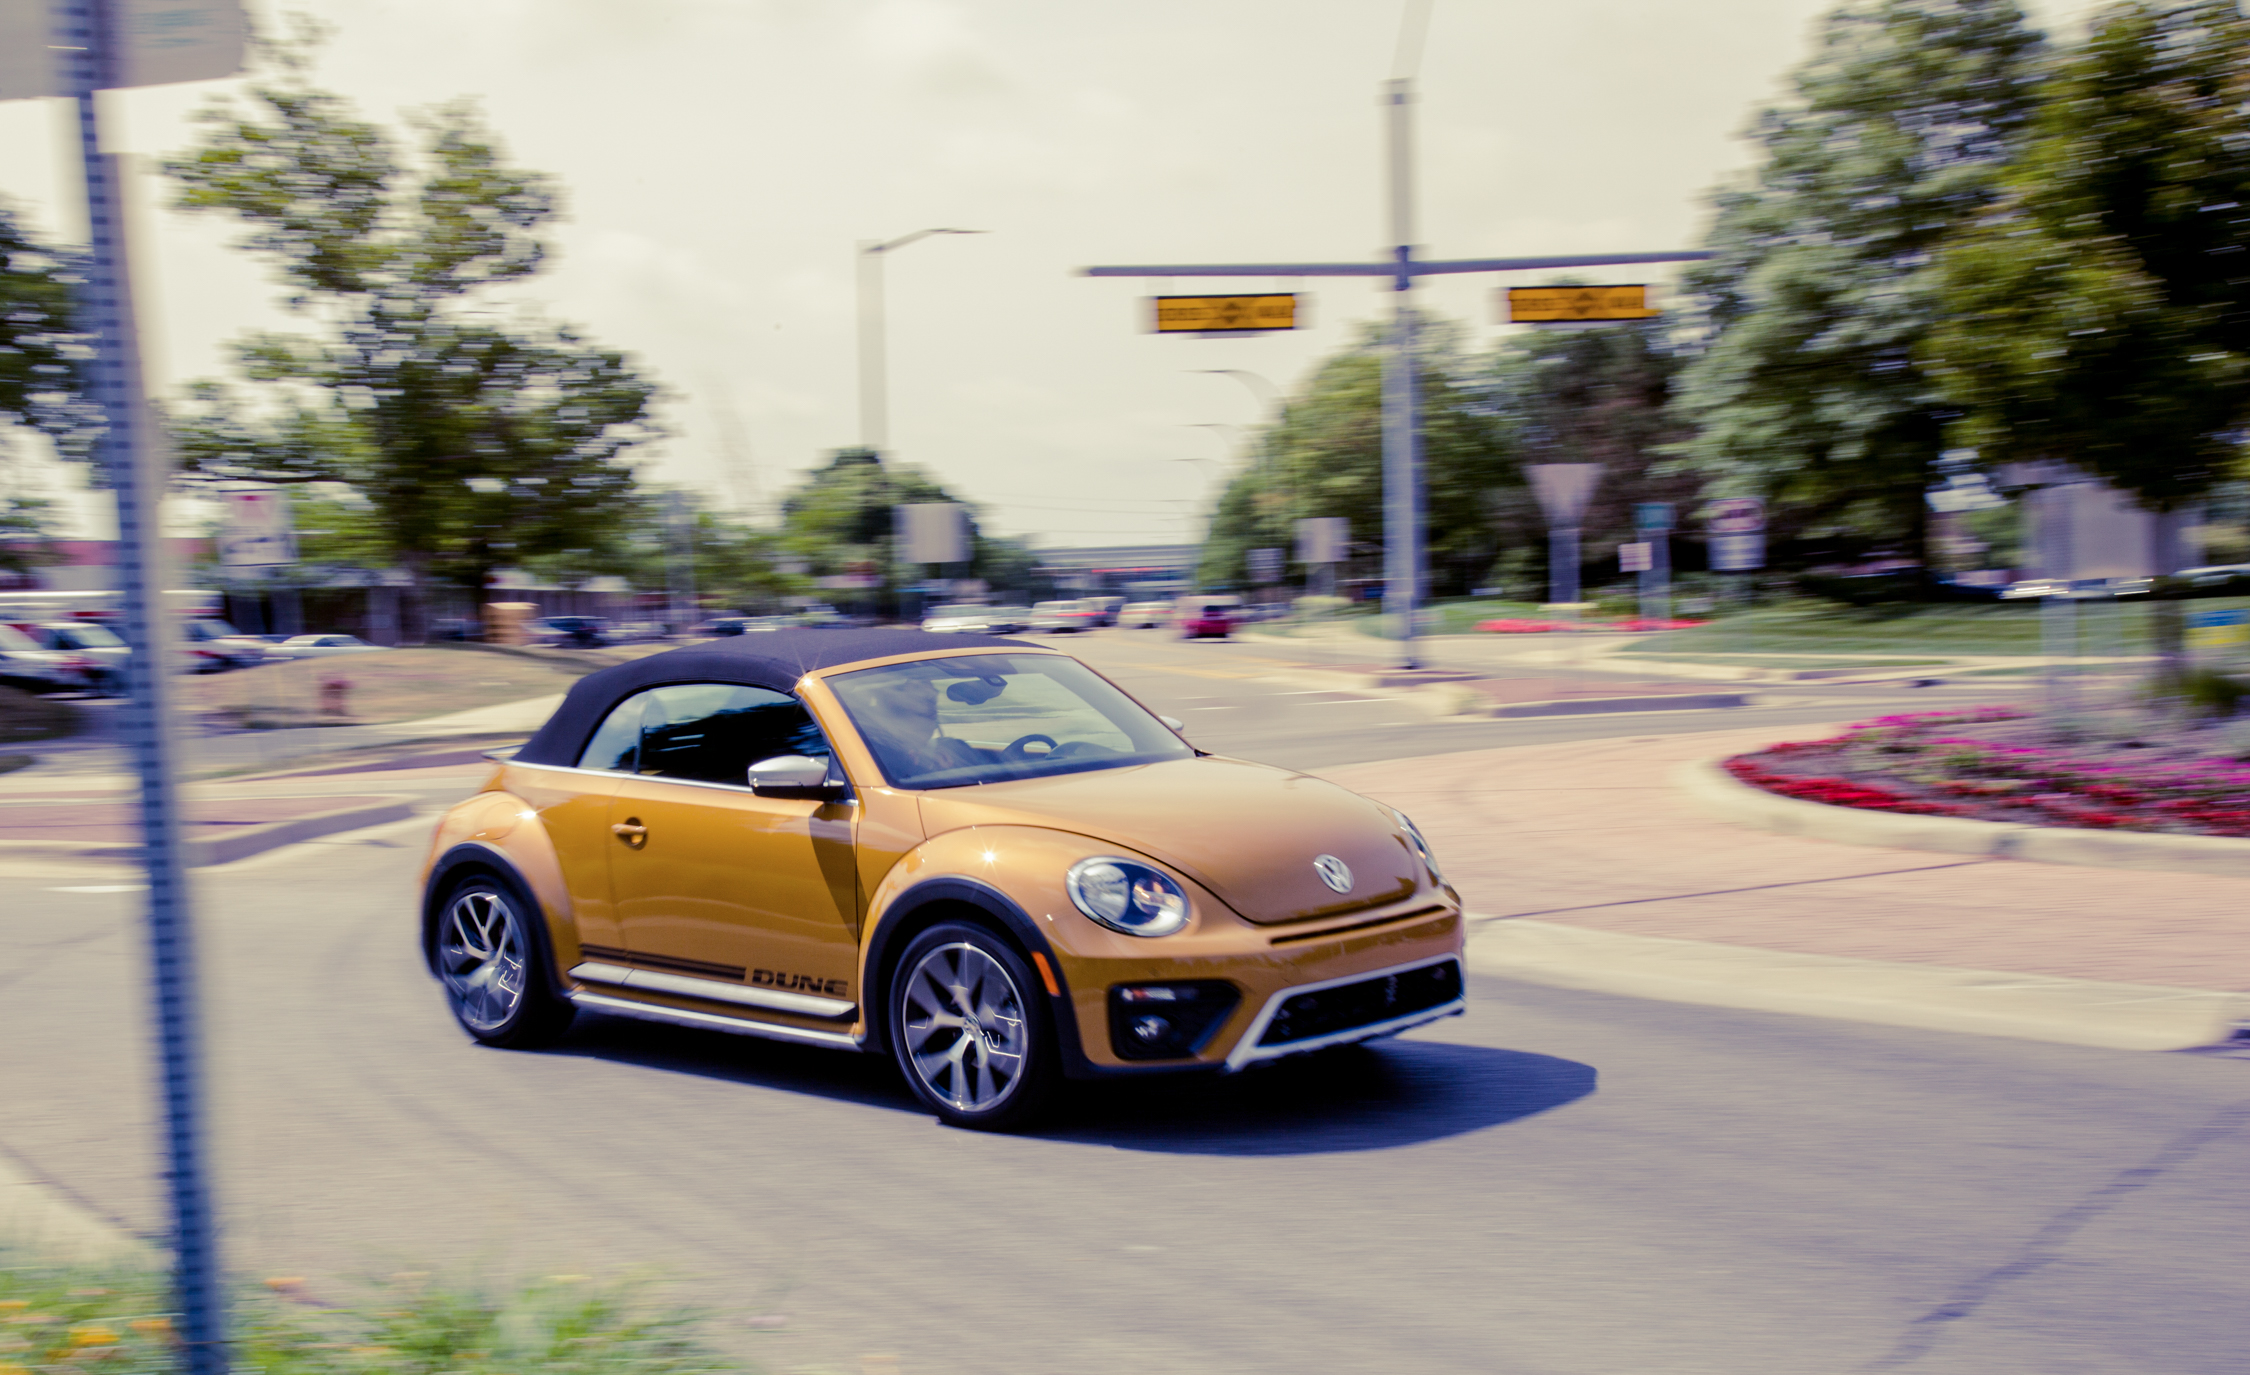 2017 Vw Beetle Dune Convertible (View 1 of 19)